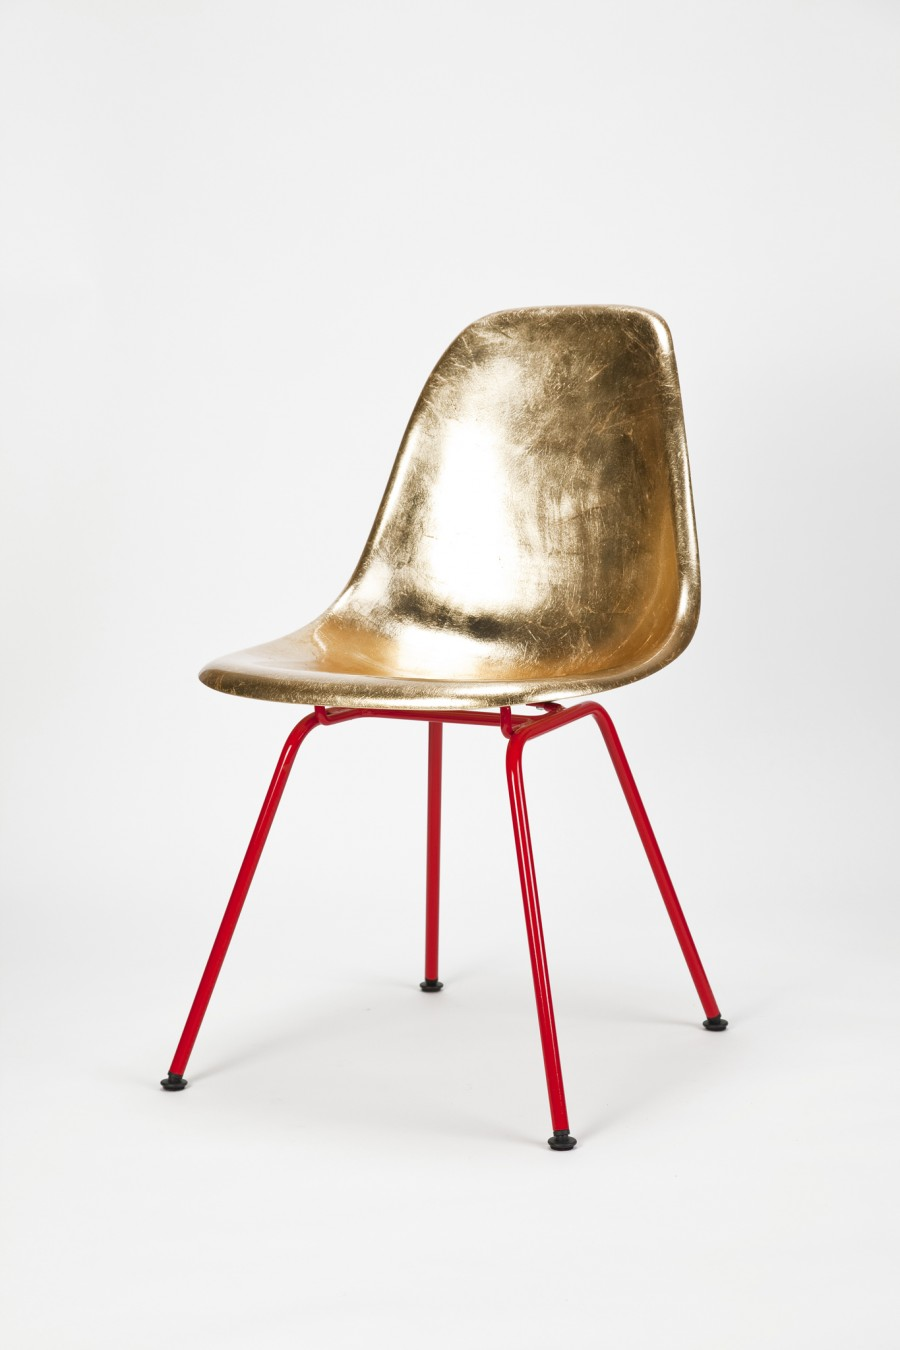 Eames and Jacobsen Go Goldy Gold by Reha Okay - on flodeau.com 03